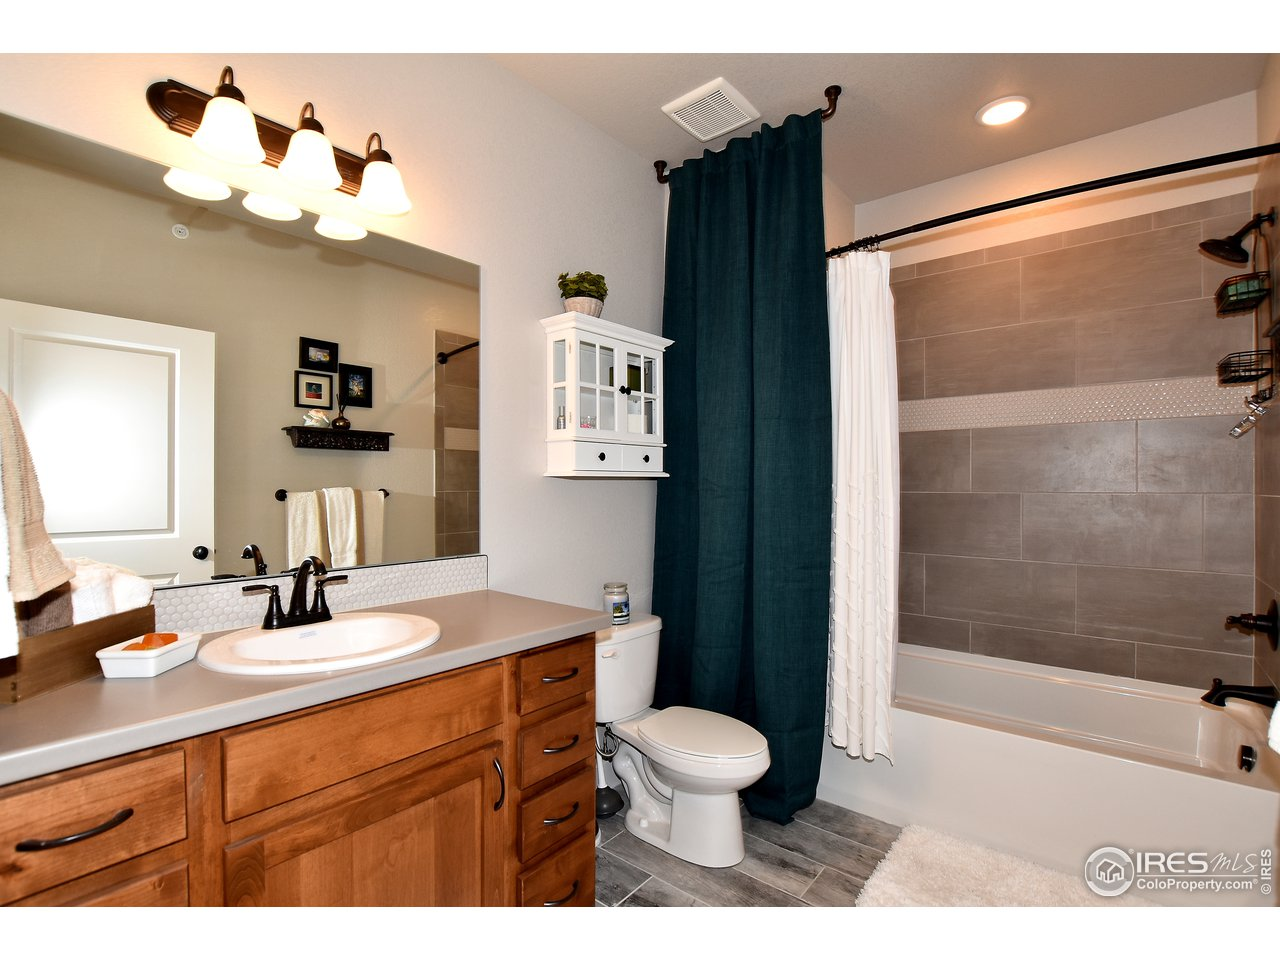 2nd full size bathroom is located right across from 2nd bedroom